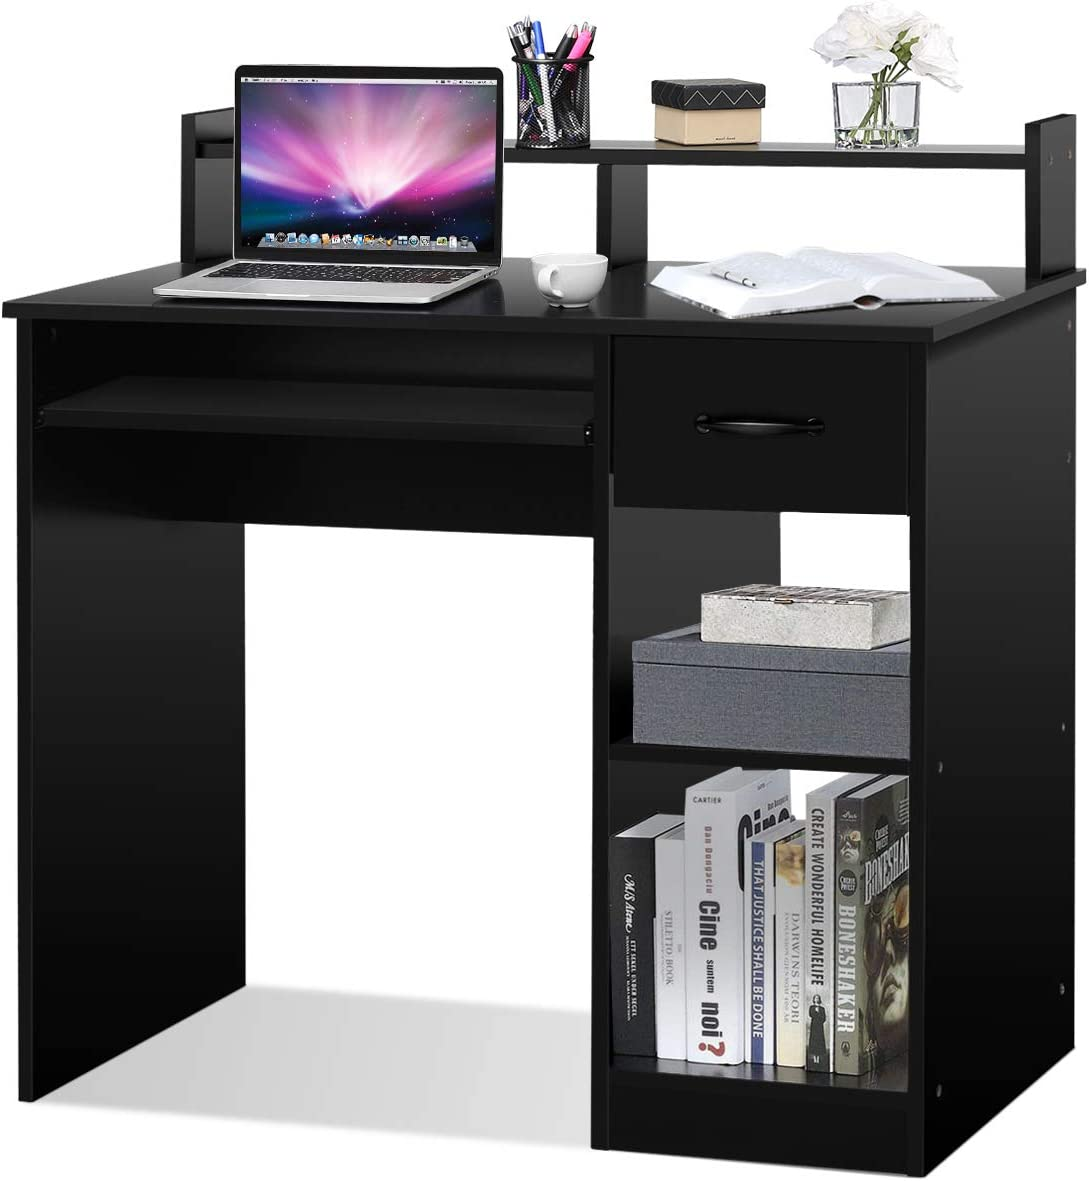 Tangkula Computer Desk, Home Office Wooden PC Laptop Desk, Modern Simple Style Wood Study Workstation, Writing Table with Storage Drawer Shelves, Wooden Furniture Black